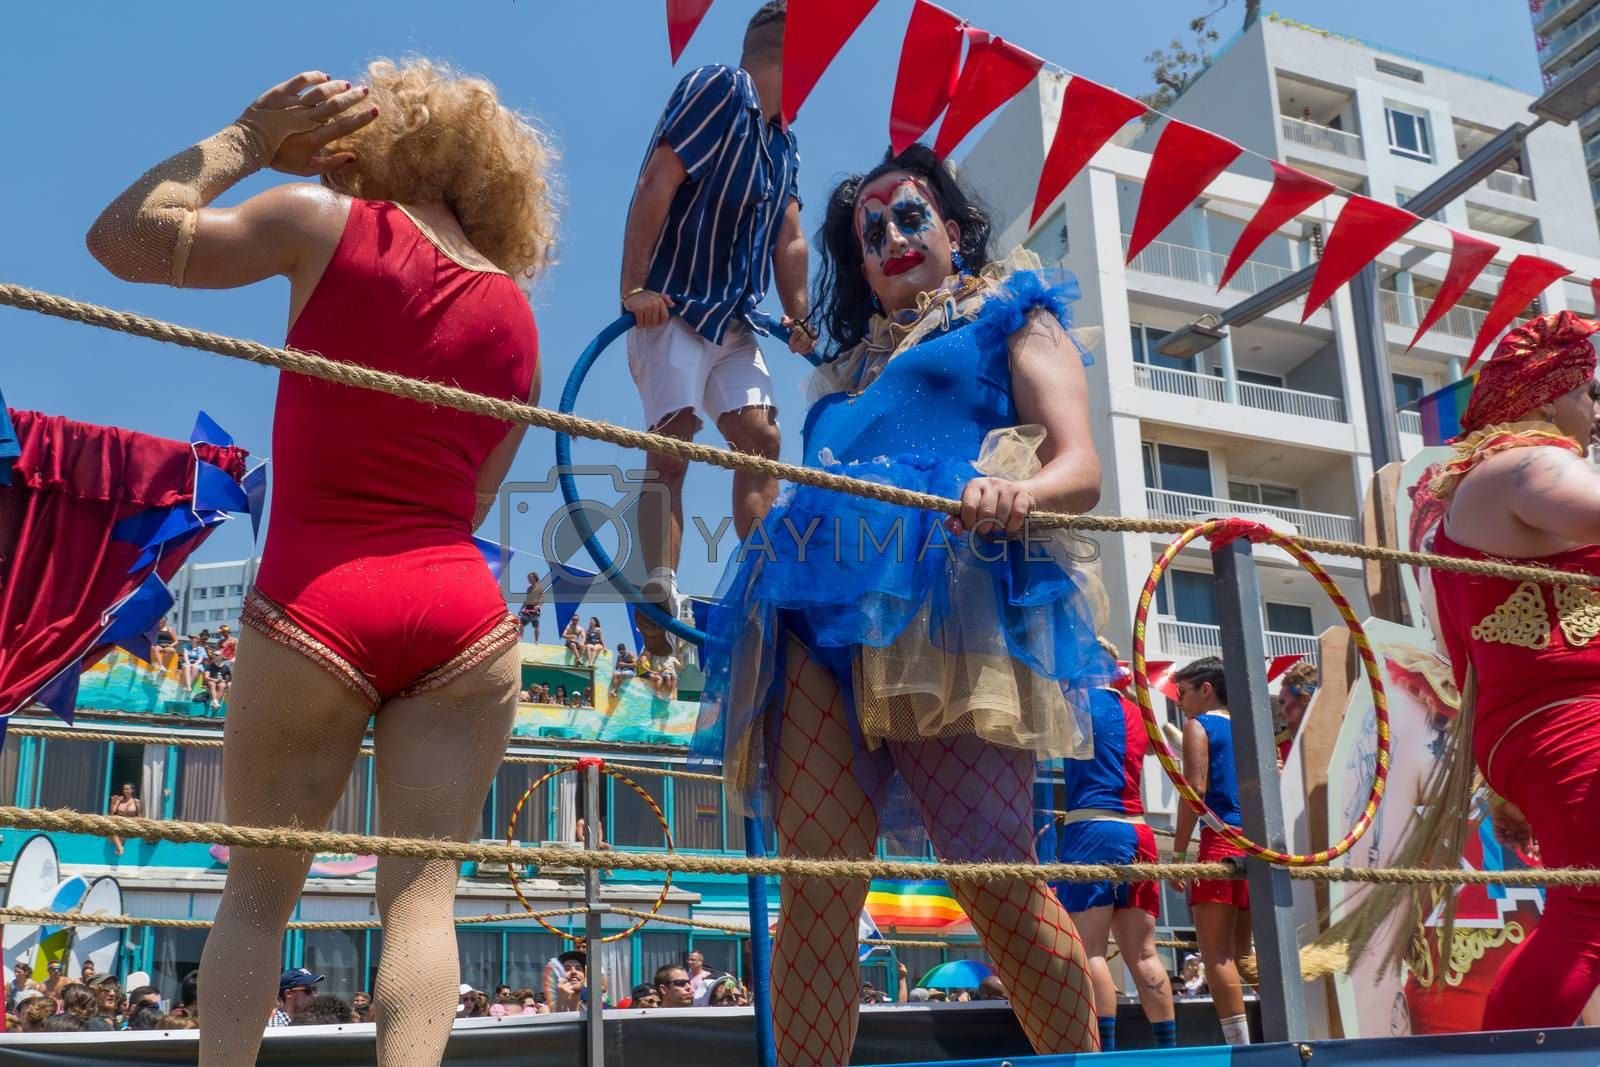 TEL-AVIV, ISRAEL - JUNE 08, 2018: Dancers of a truck entertain the crowd, and take part in the annual pride parade of the LGBT community, in Tel-Aviv, Israel